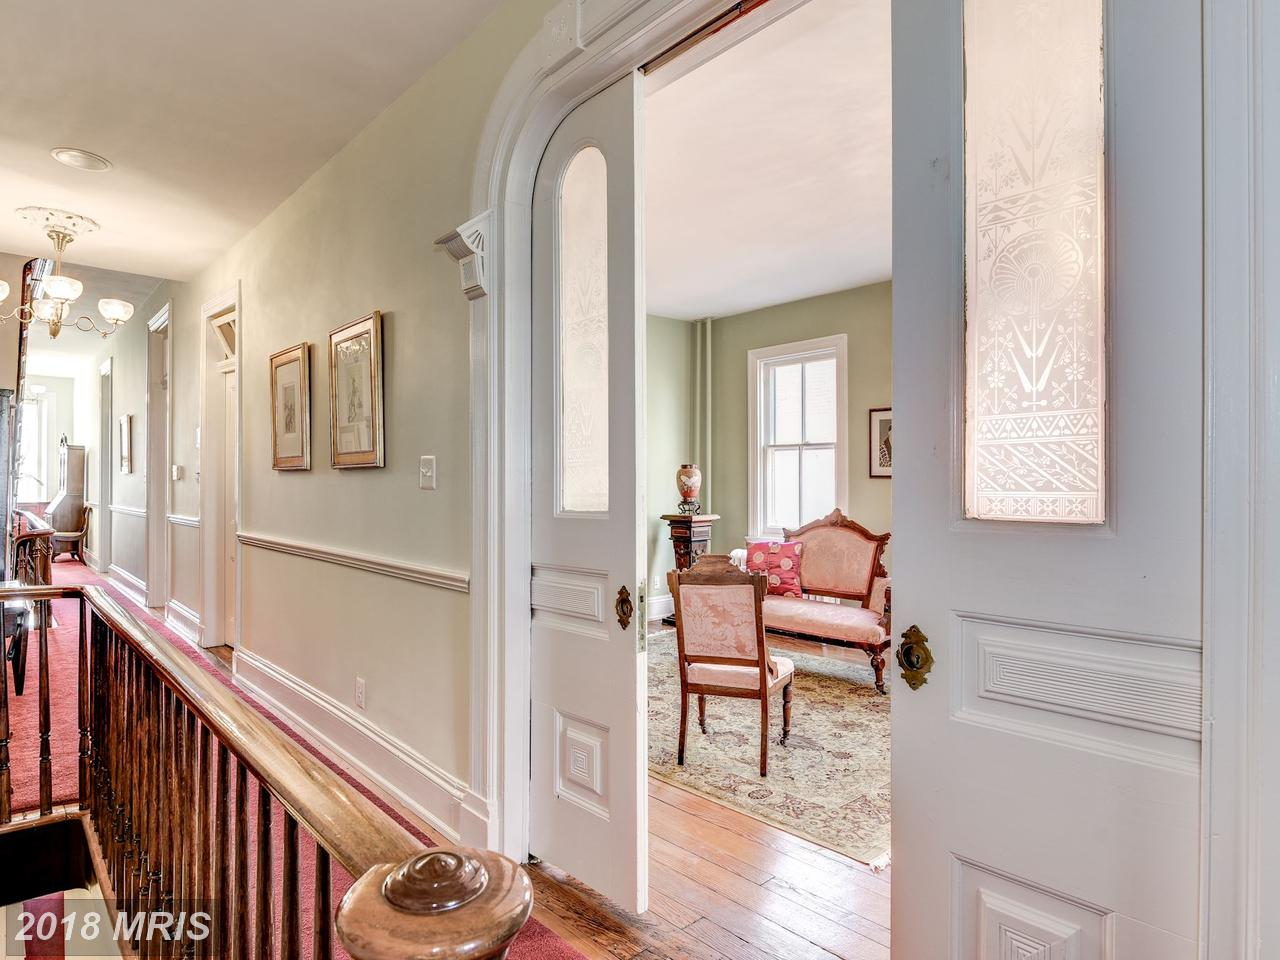 Additional photo for property listing at Semi-Detached, Colonial - ALEXANDRIA, VA 413 WASHINGTON ST N Alexandria, Virginia,22314 Estados Unidos